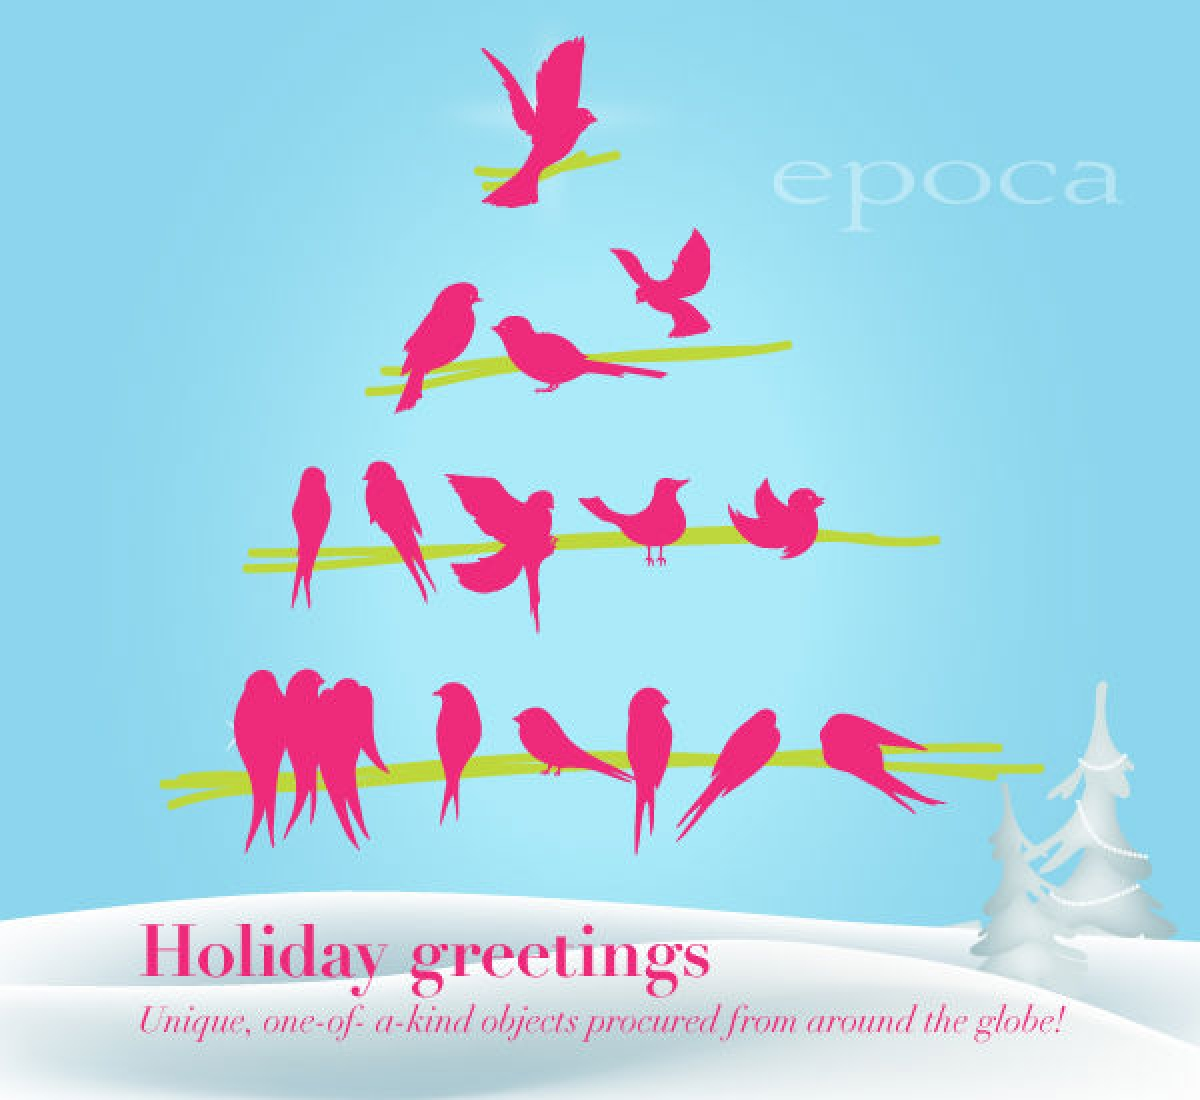 Whats In At Epoca Holiday Greetings Unique One Of A Kind